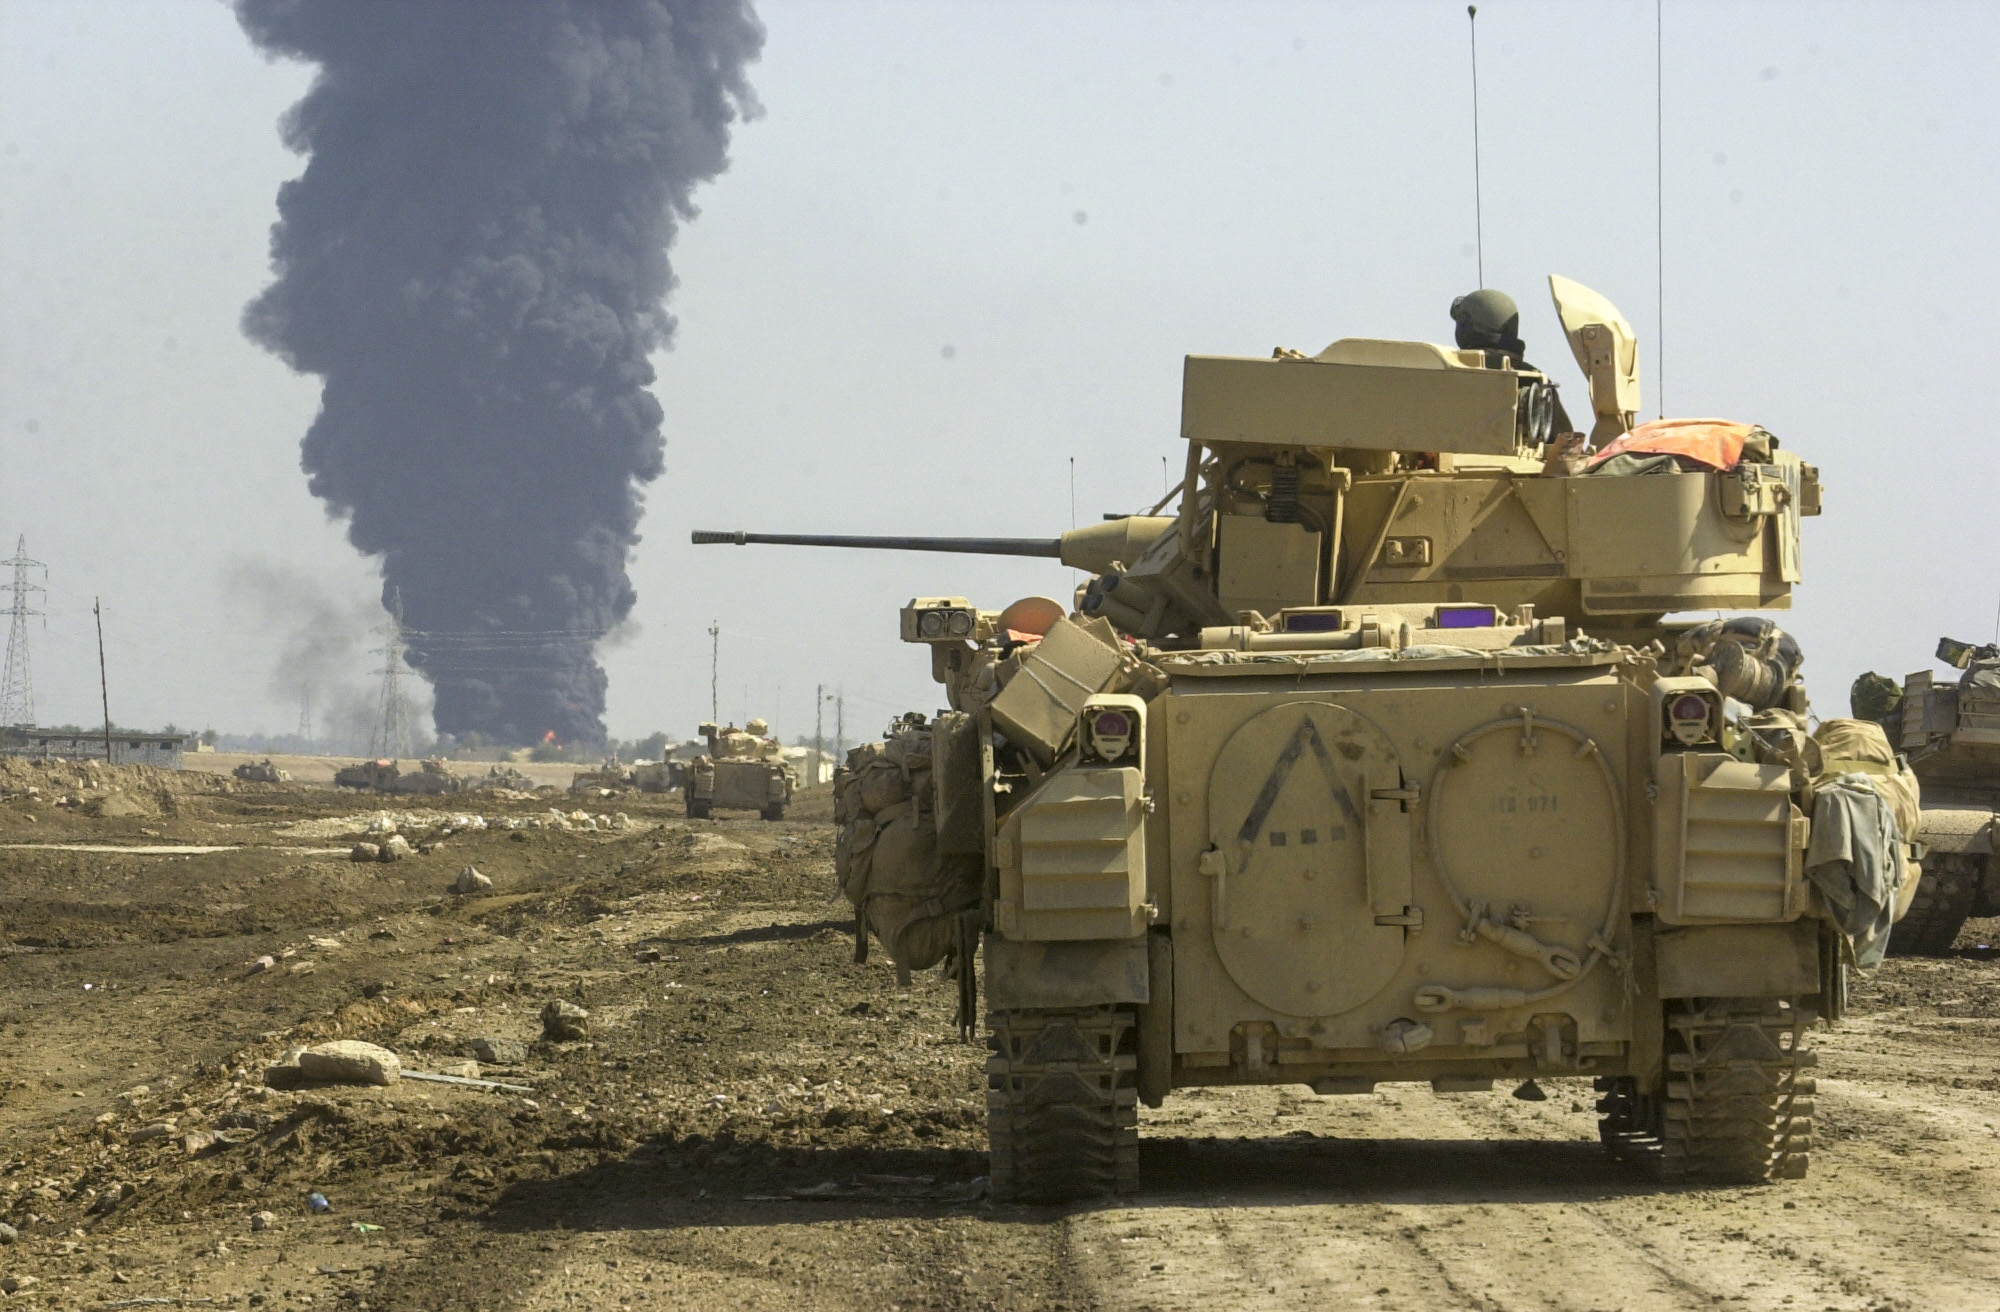 Troops from the U.S. Army's 3rd Squadron, 7th Cavalry Regiment watch as a target inside the village of As Samawah, Iraq goes up in flames. The Cavalry is in the process of taking the village and is receiving some resistance from fighters inside. (Warren Zinn/Army Times)